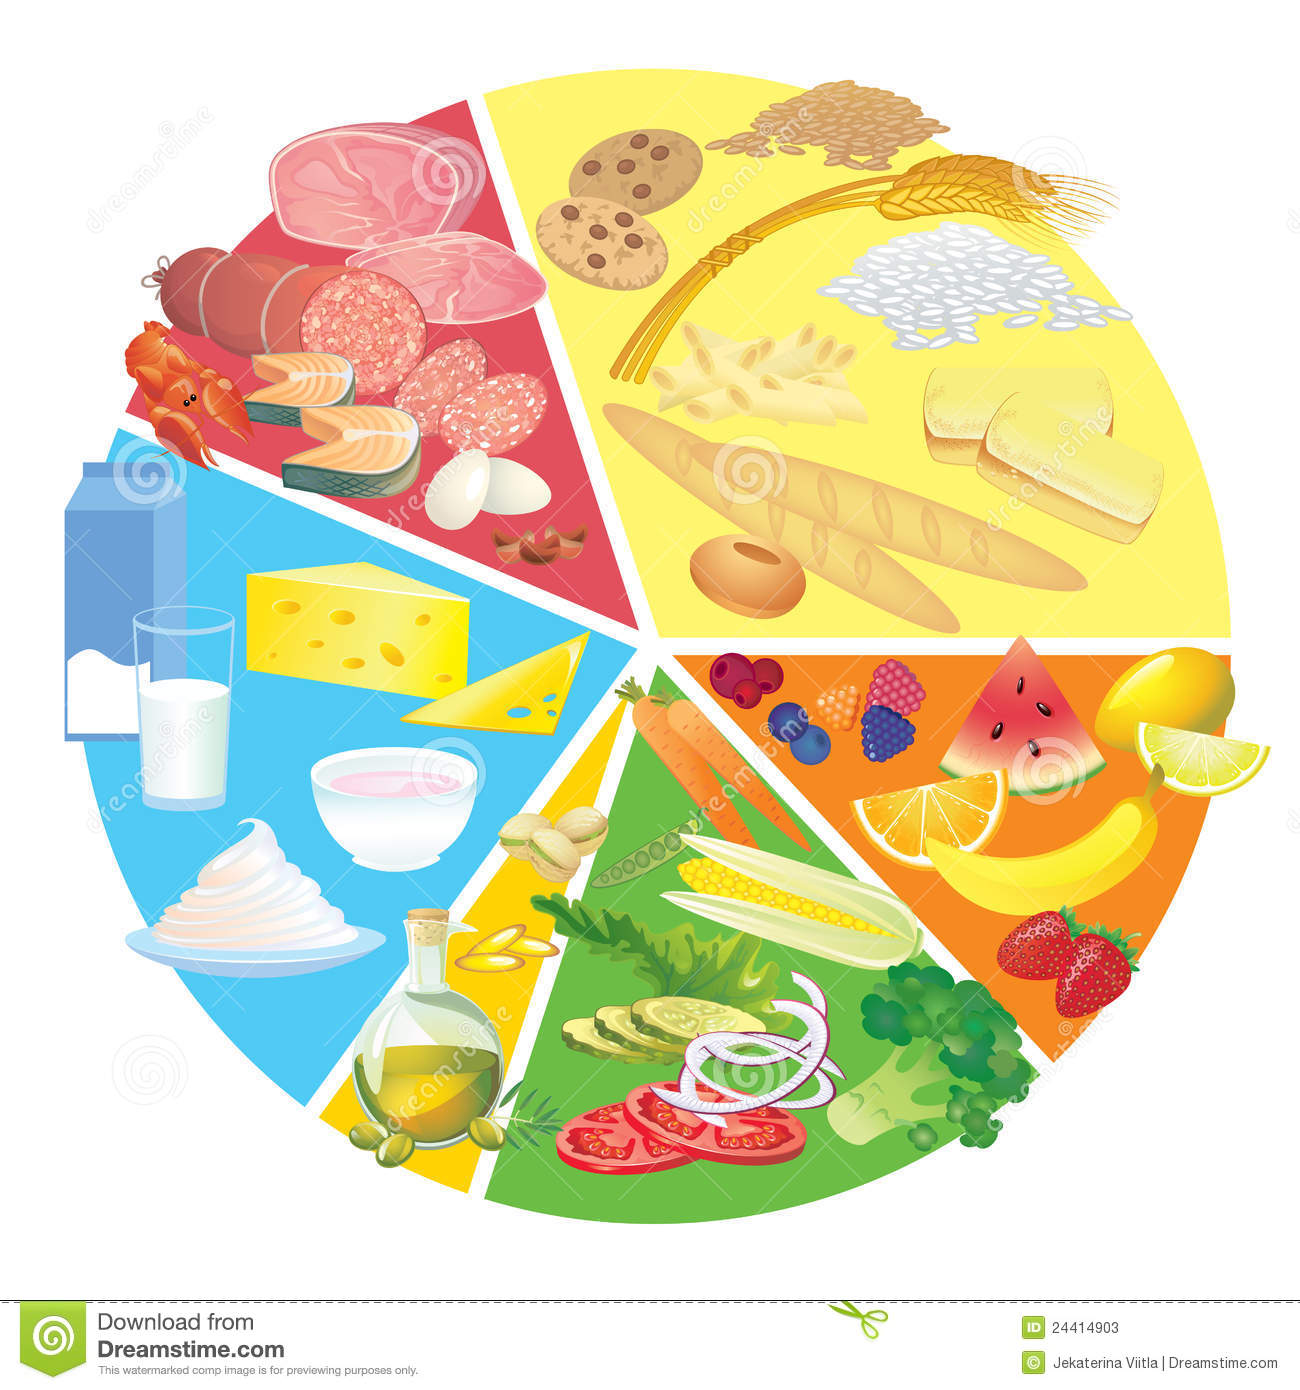 Healthy Eating Plate Diagram Stock Vector - Image: 84634373